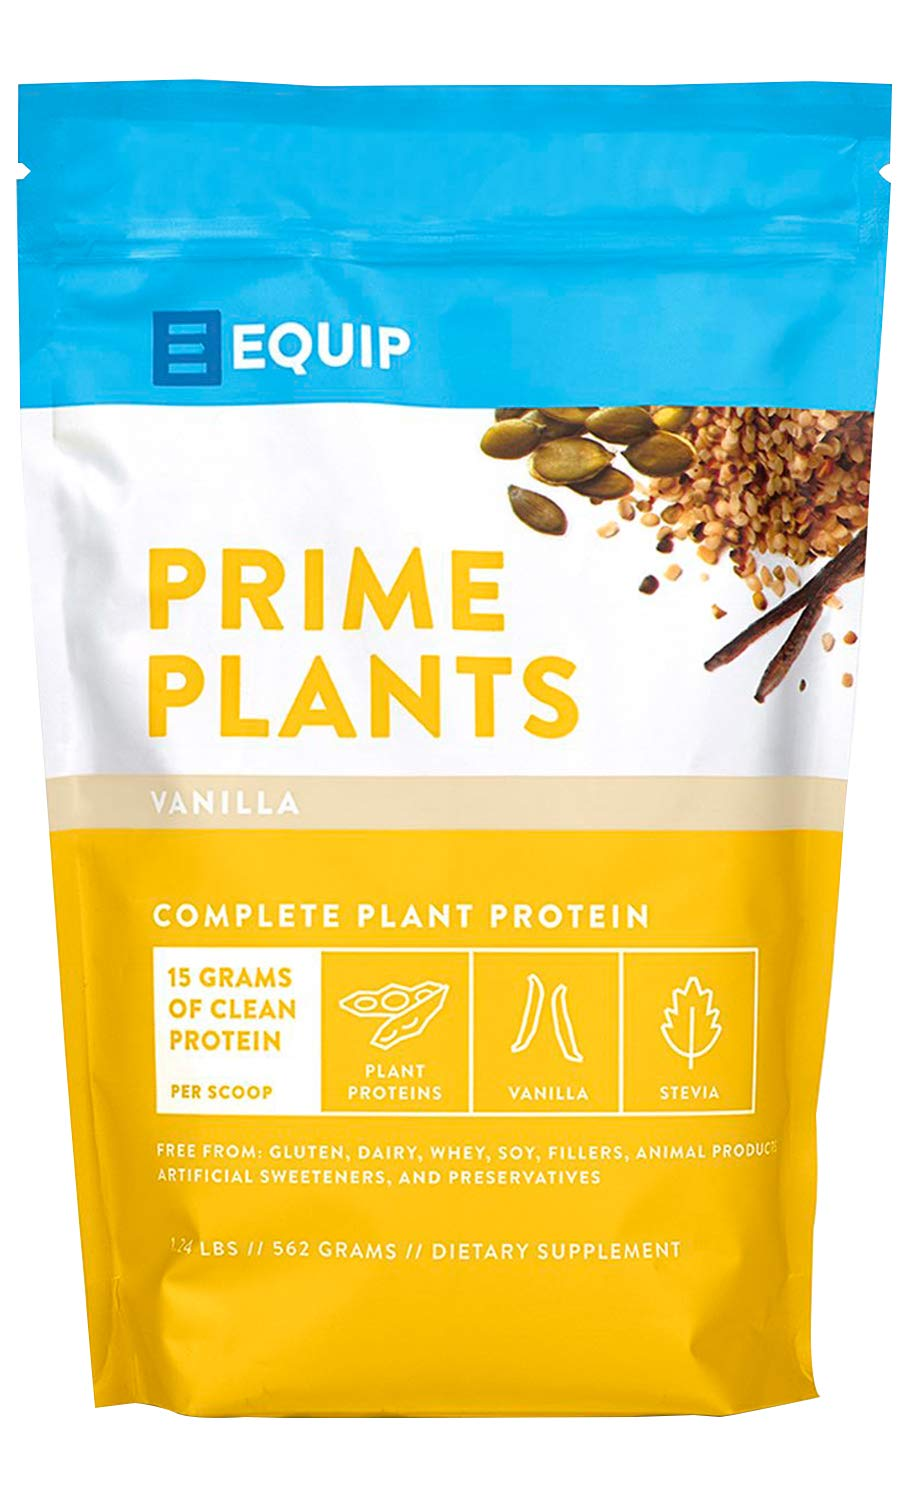 Vegan Vanilla Plant Protein Powder: Ideal Garden Pea Protein for Women or Men. Best as Low Carb Plant Based Protein Powders Shake Mix w Hemp, Sacha Inchi, Pumpkin. Clean Vegetarian Nutrition, No Soy by Equip